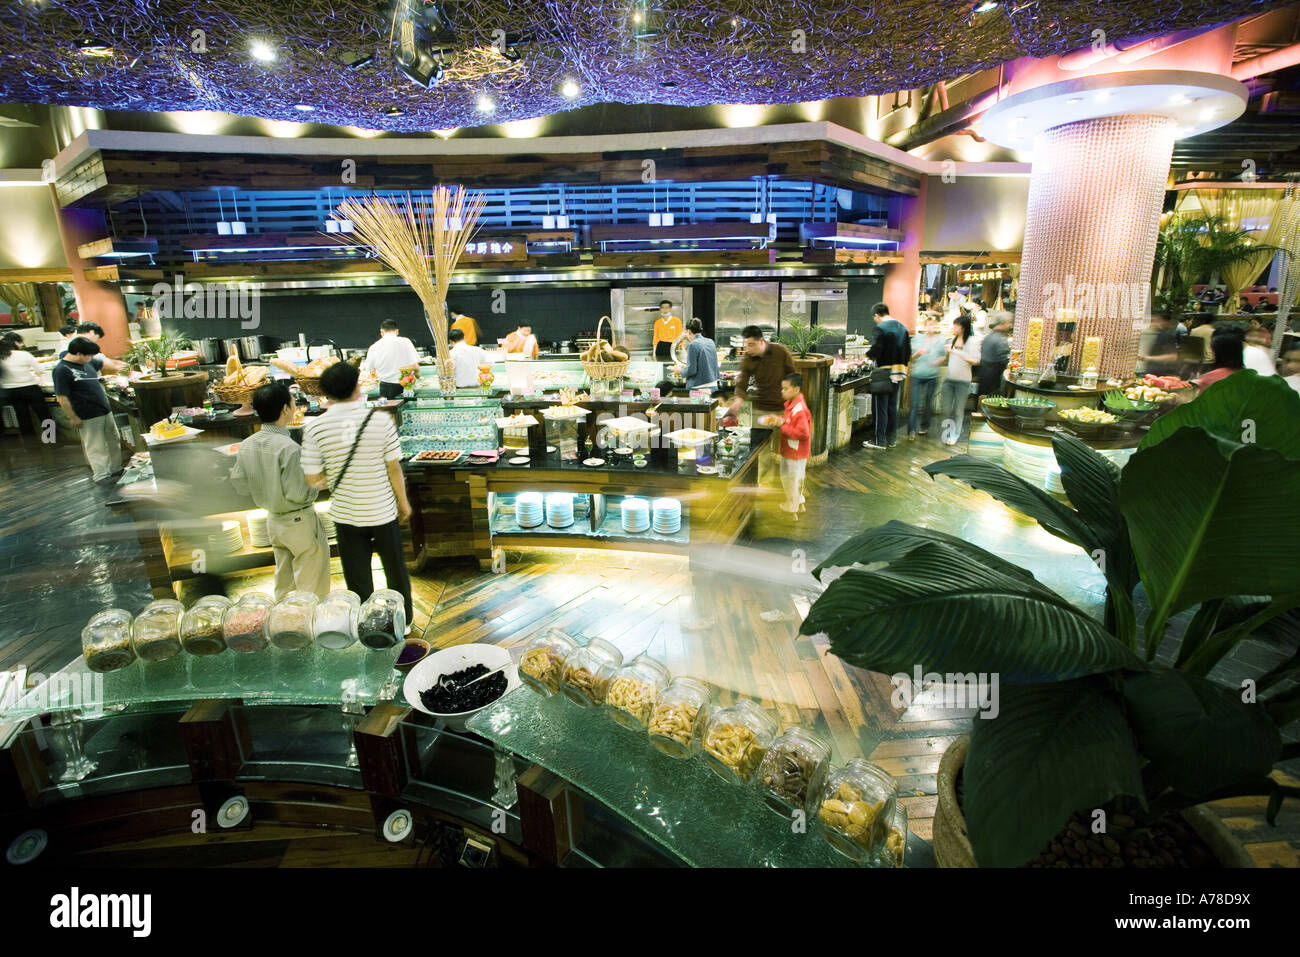 Cafeteria in shopping mall - Stock Image